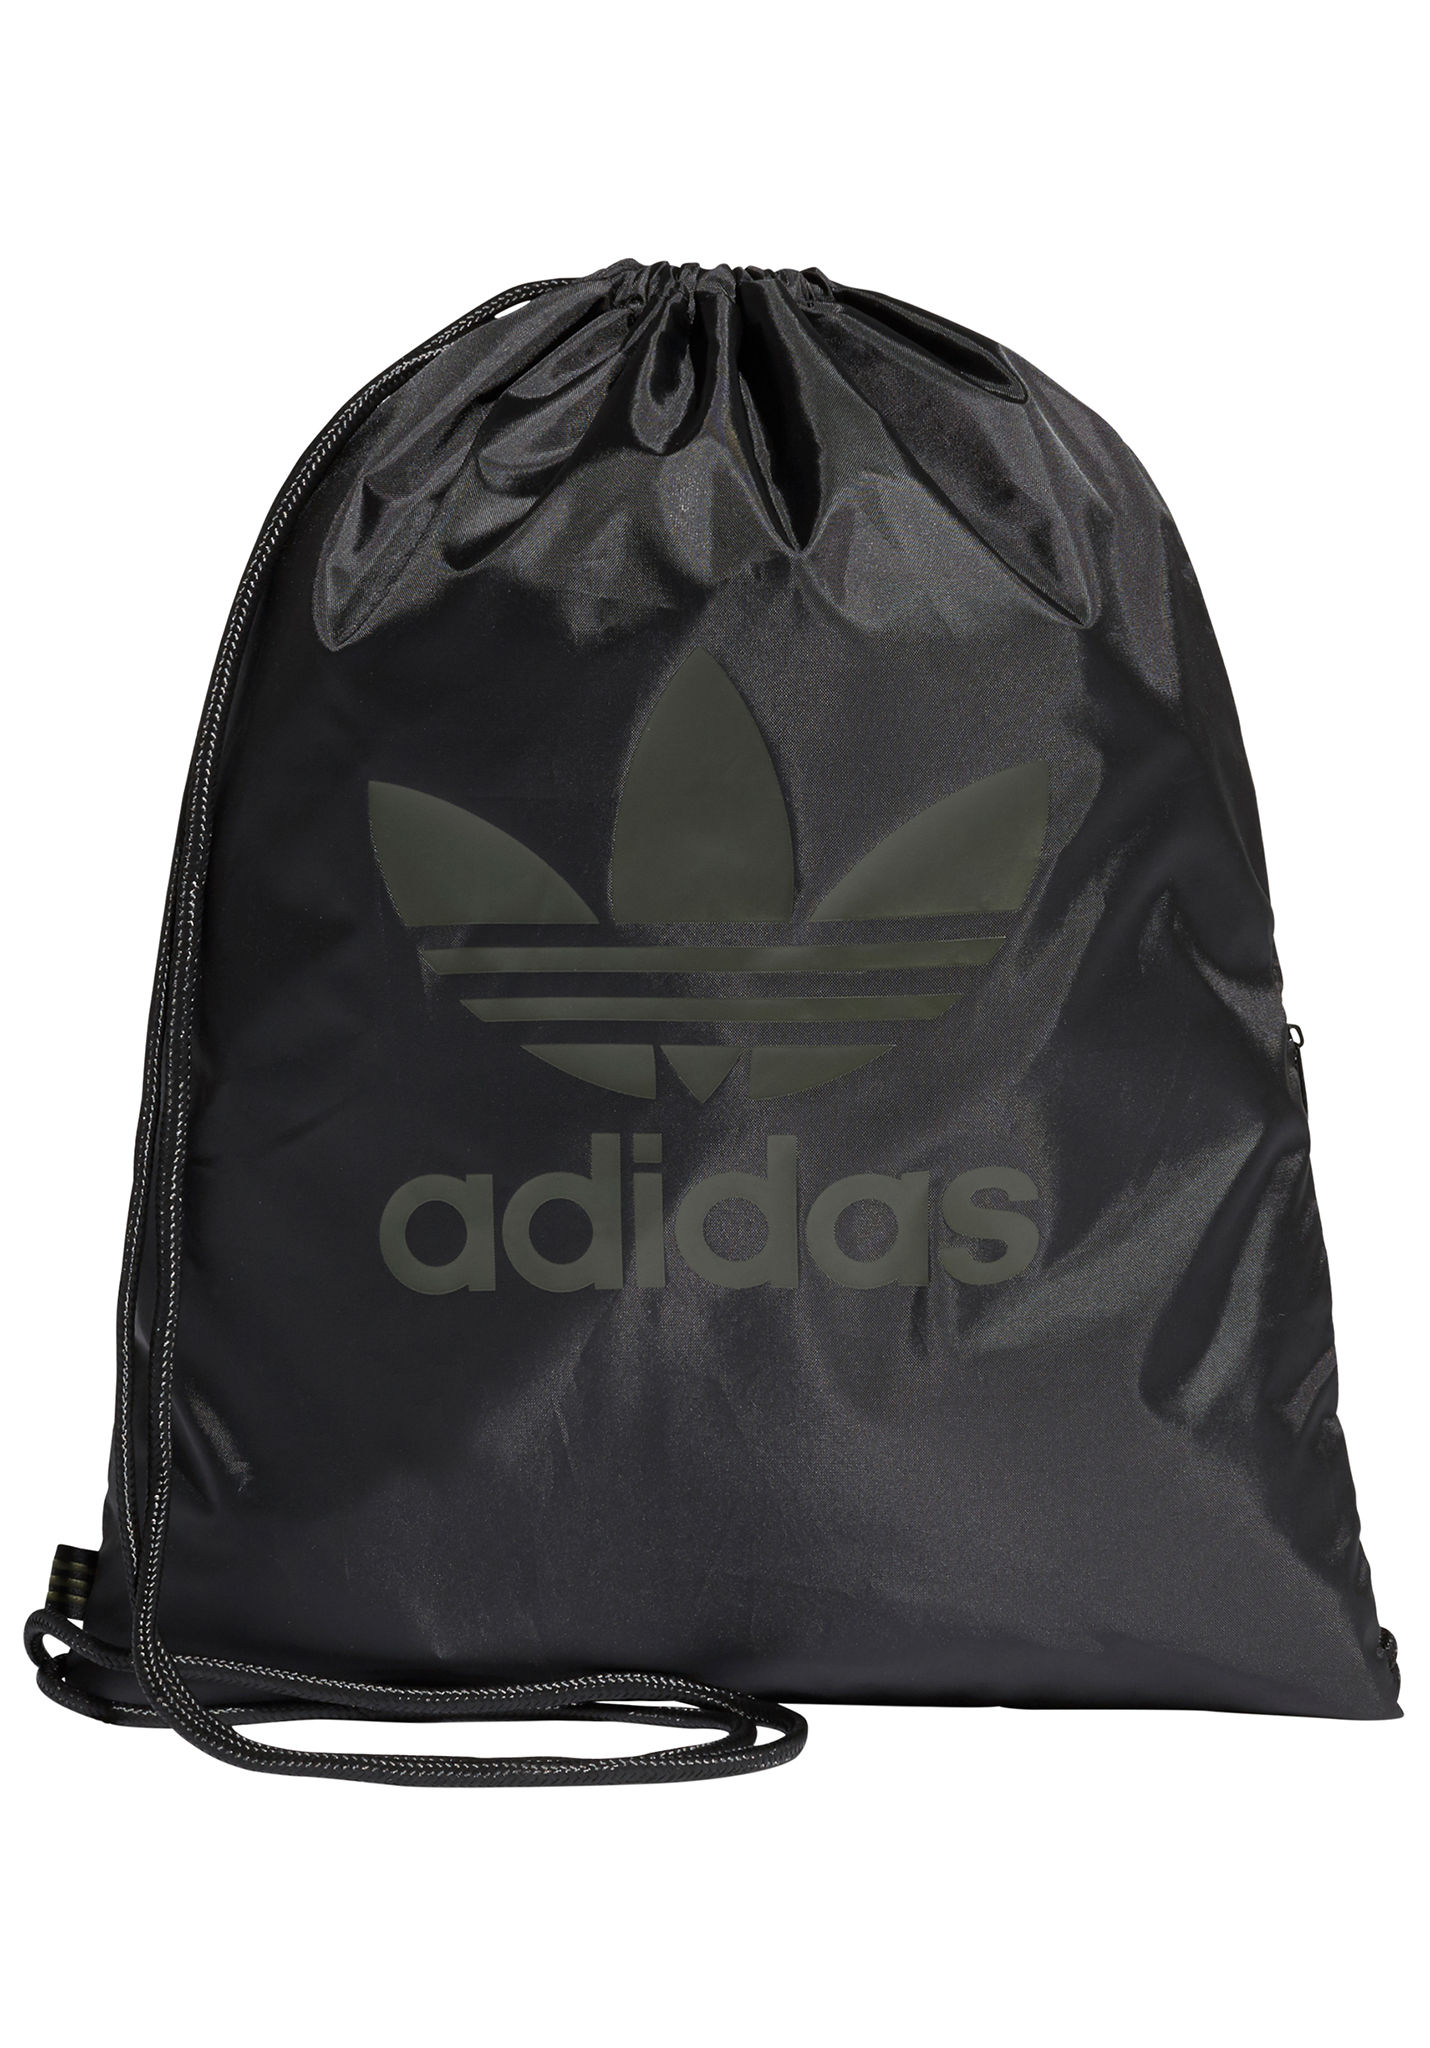 5fa8434b5162 ADIDAS ORIGINALS Trefoil - Gym Bag for Men - Black - Planet Sports